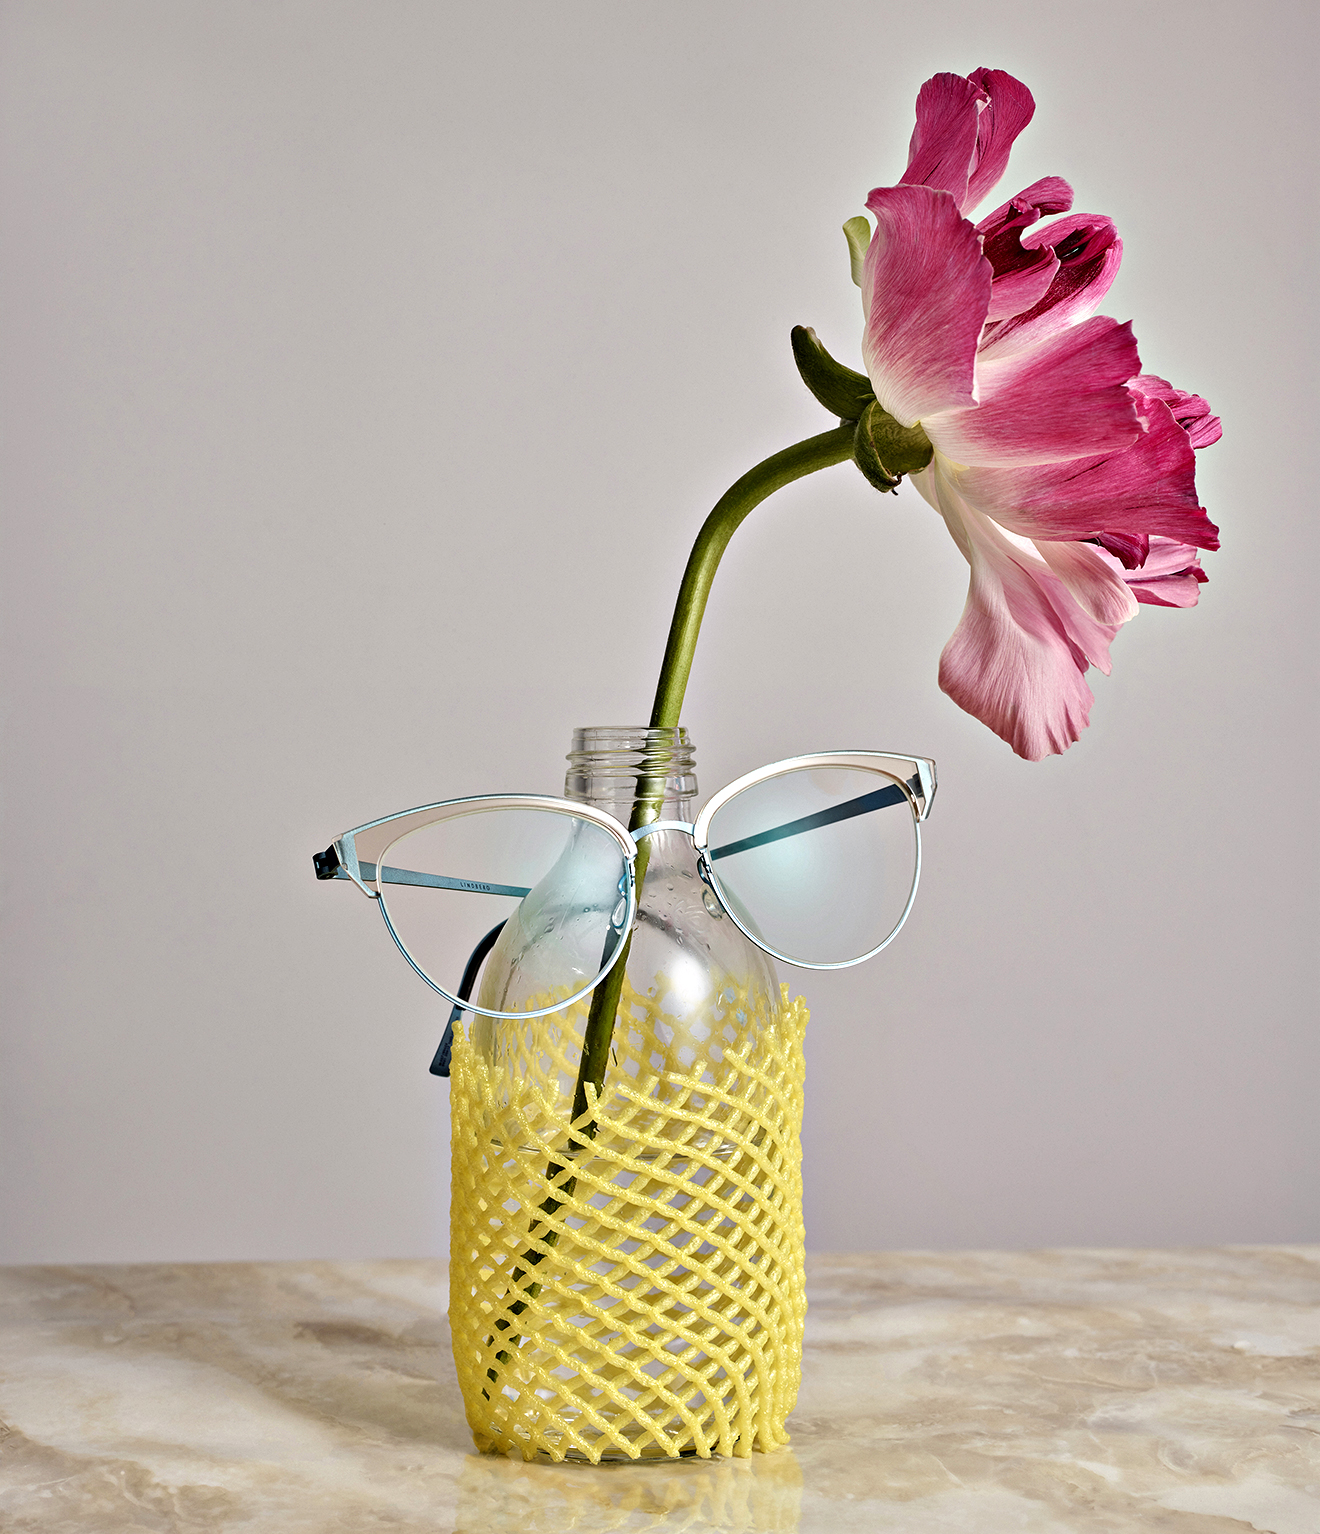 LINDBERG sunnies in retro shoot with Wallpaper